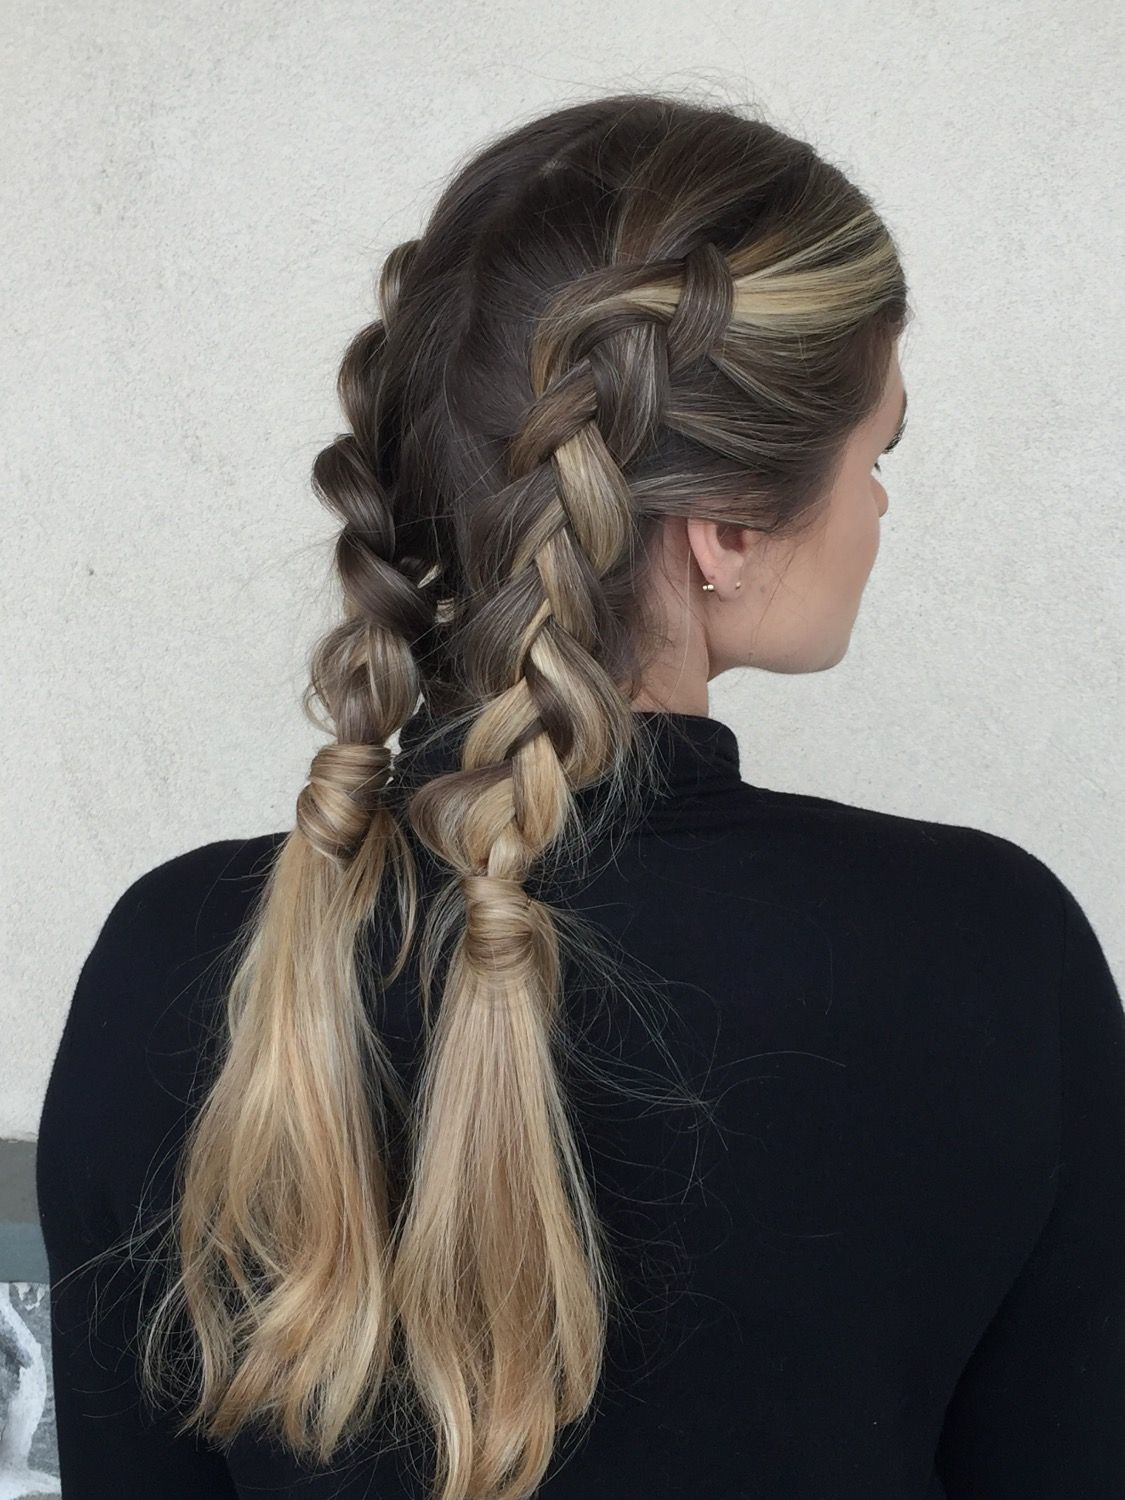 A Cardio Ready Braid The Real Secret To A Successful Workout Session Is Having A Hairstyle That Won T Quit Halfway Through Your Wor Hair Styles Braids Beauty